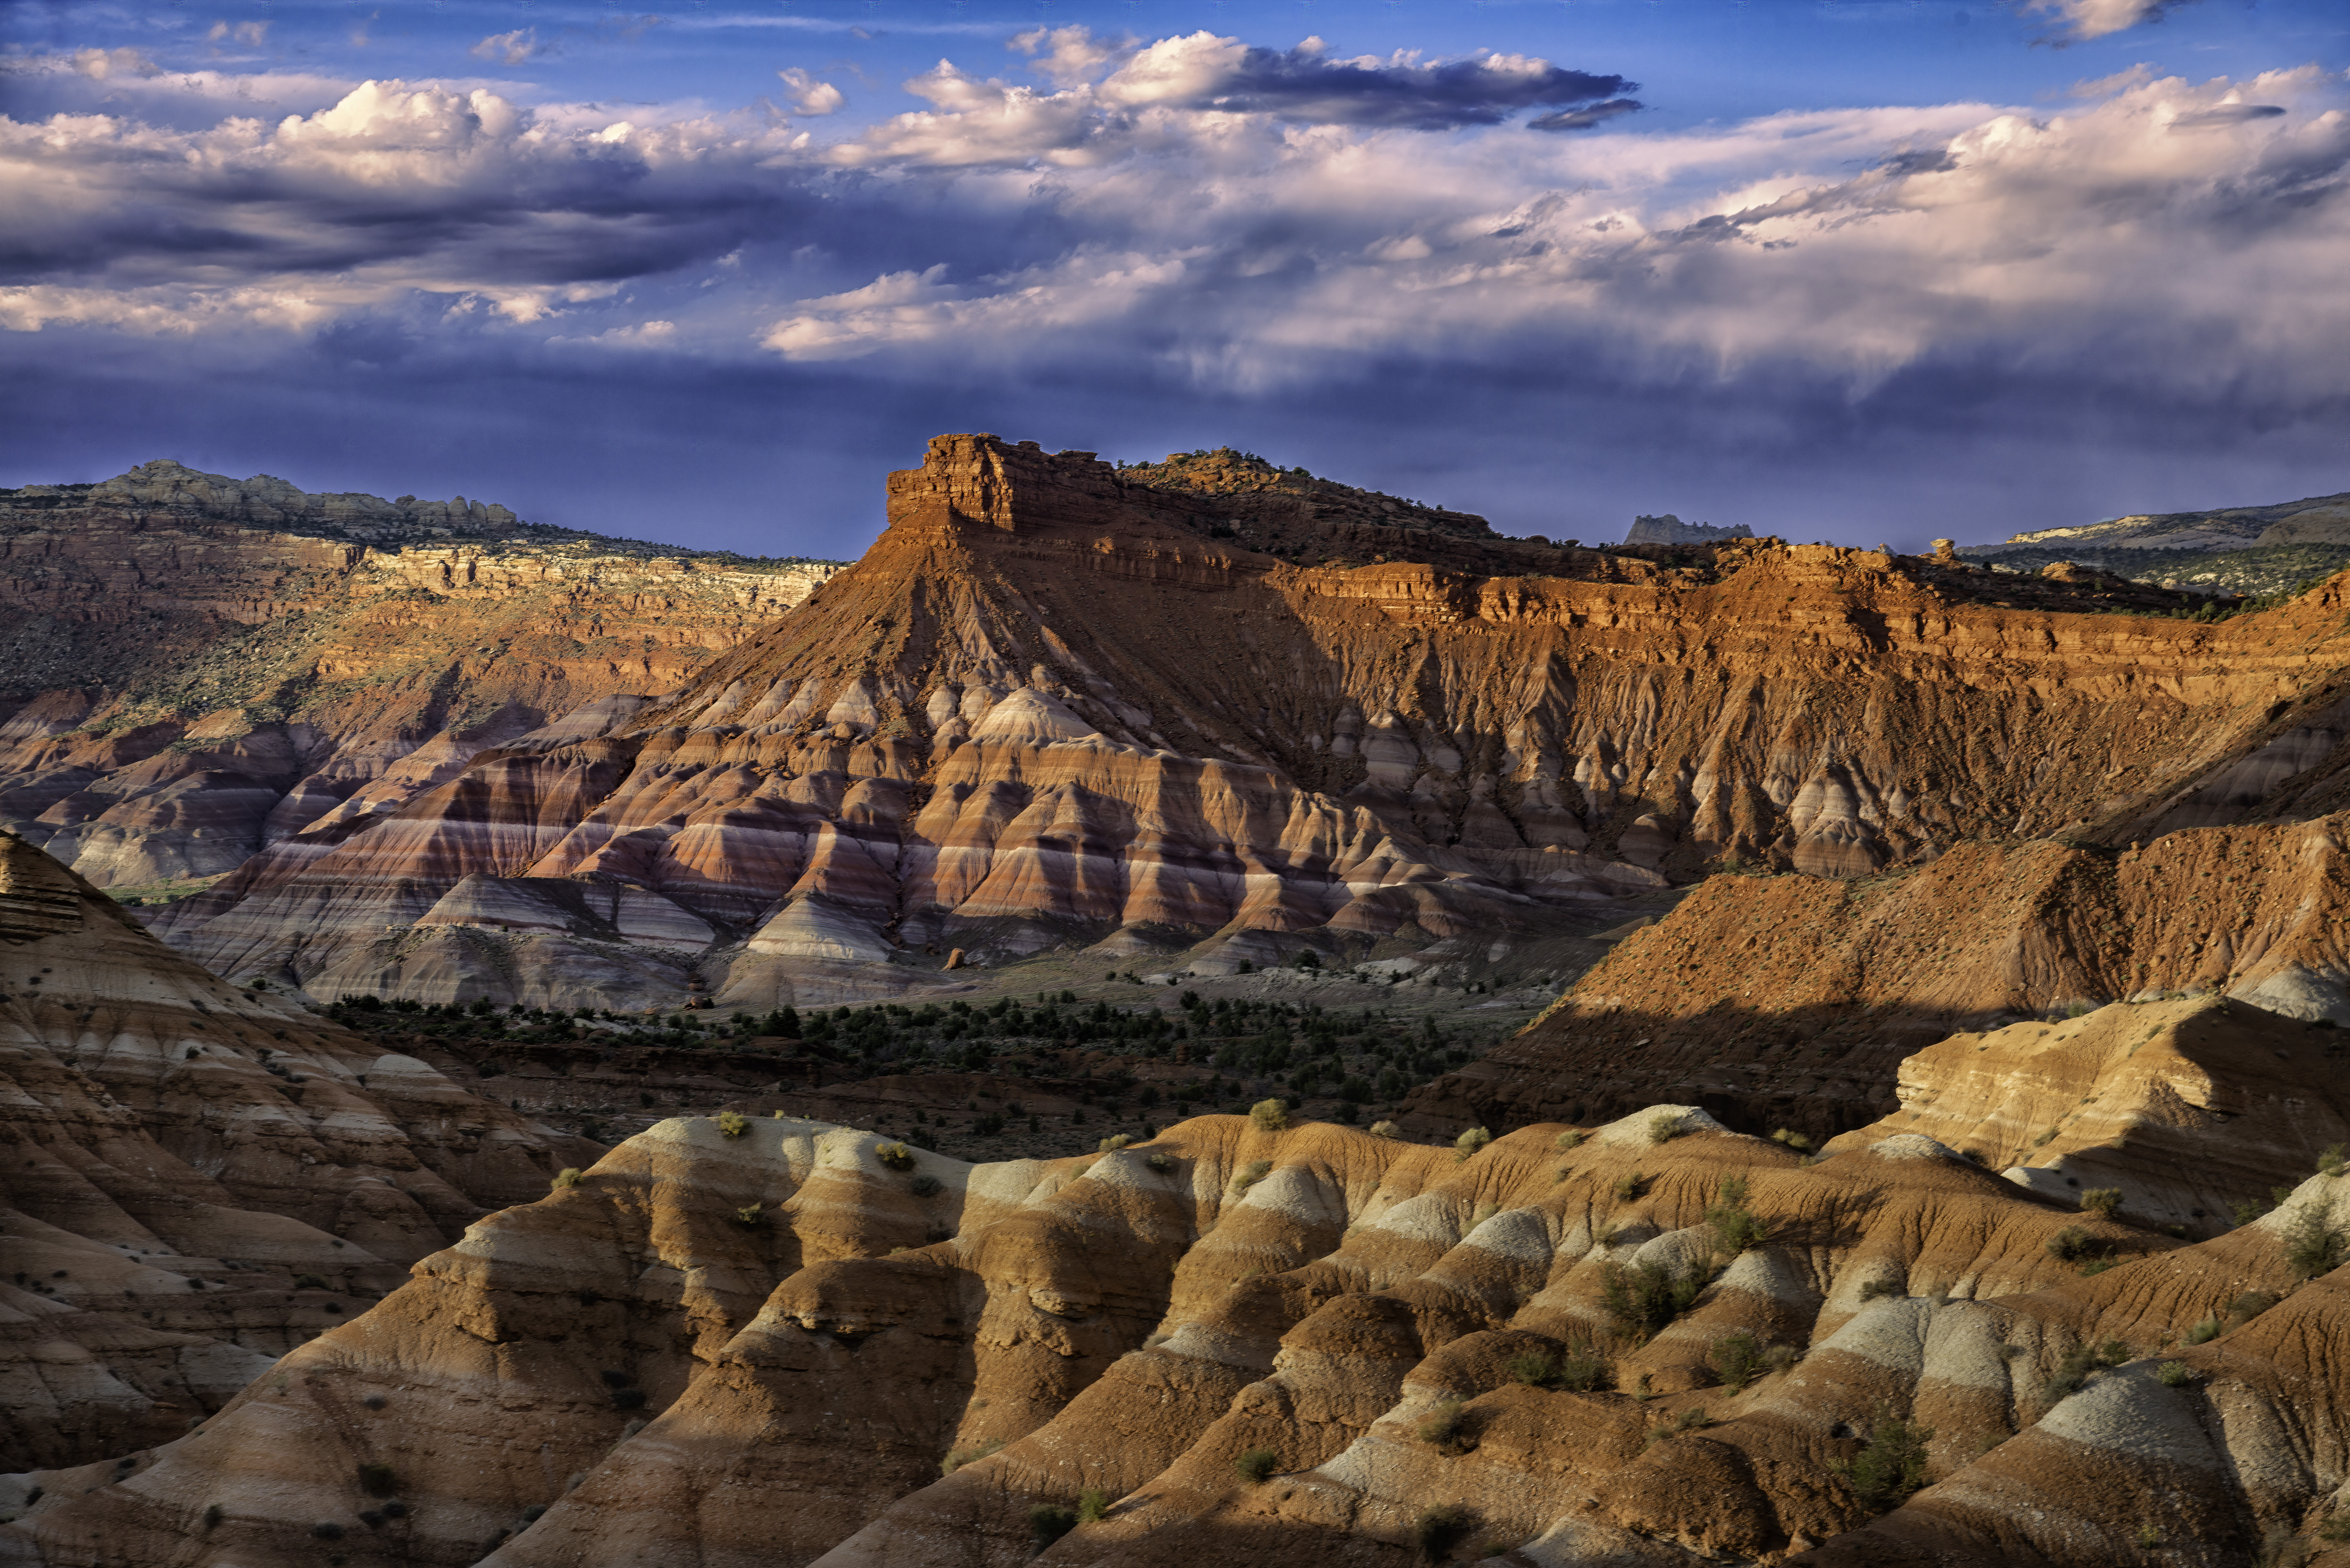 130445 download wallpaper Nature, Canyon, Vertex, Top, Rock screensavers and pictures for free